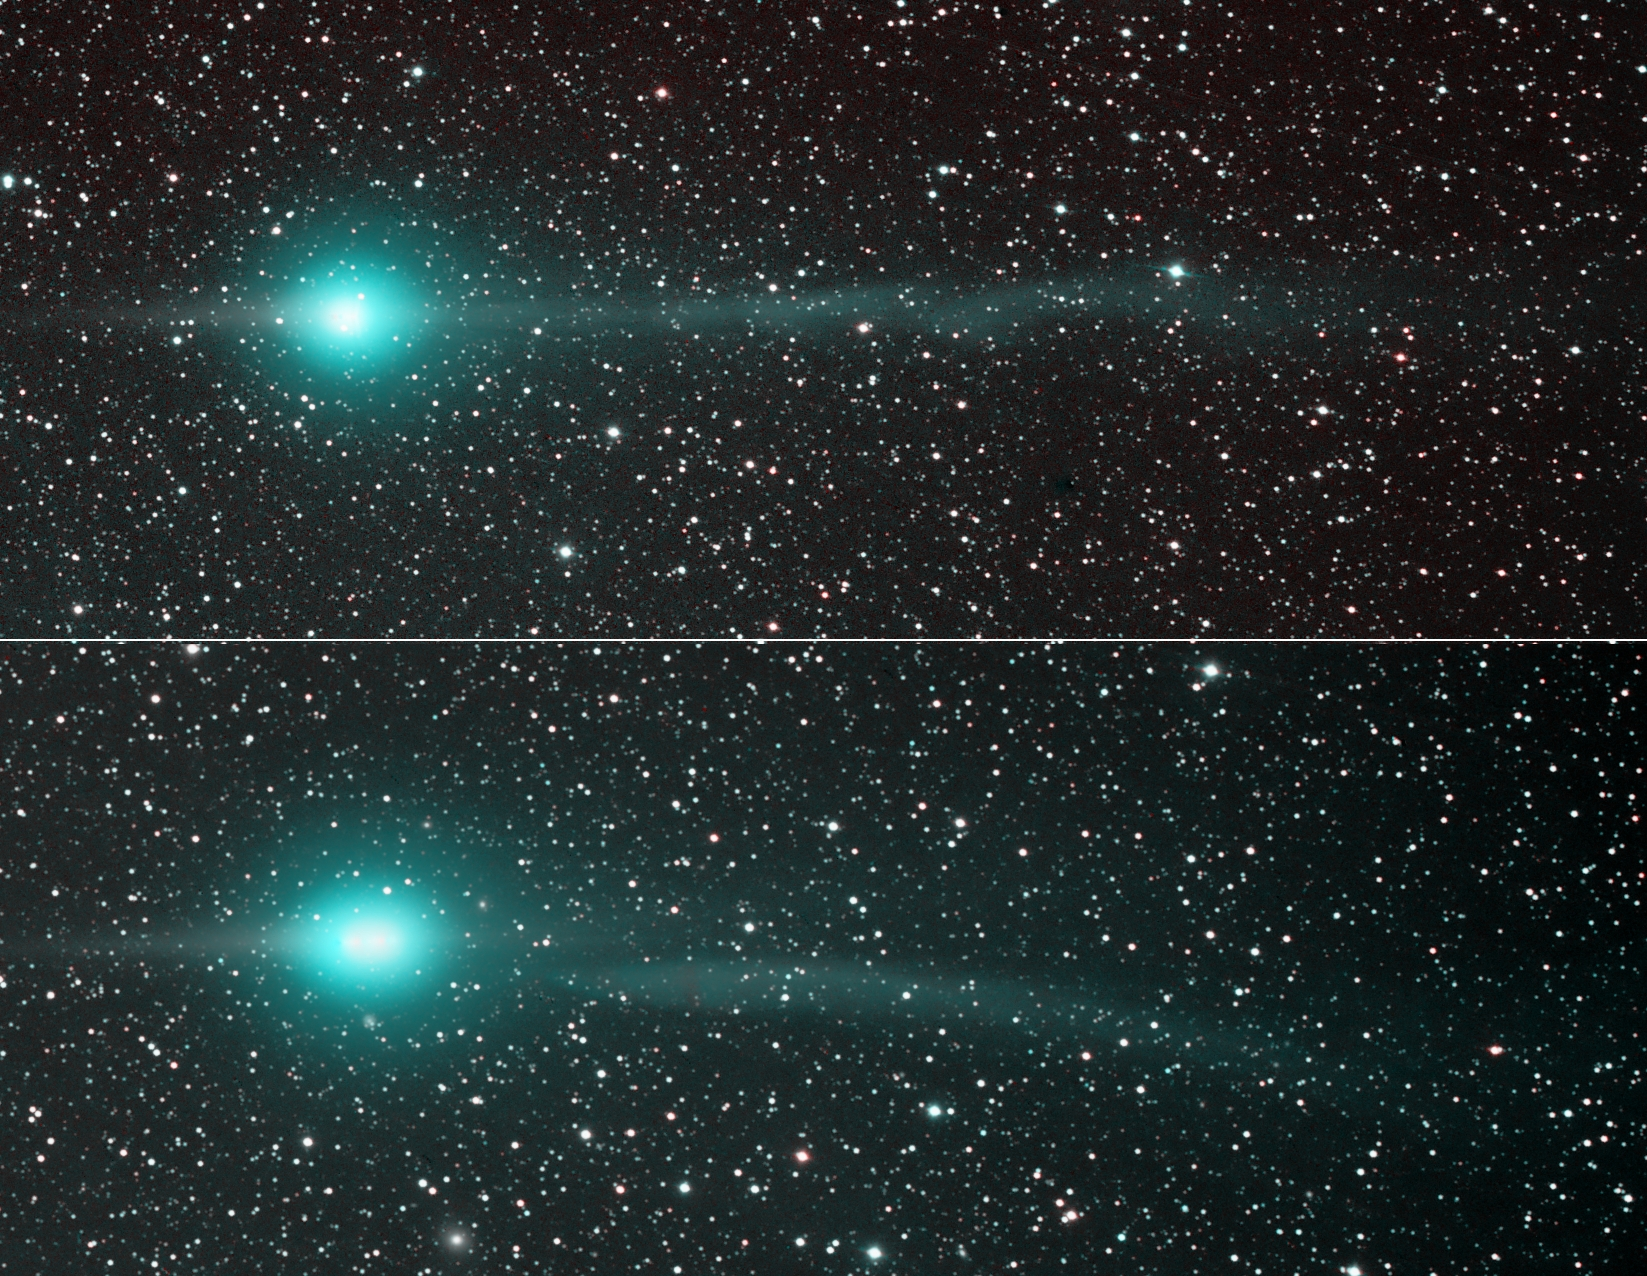 Image of Comet from Wikimedia Commons